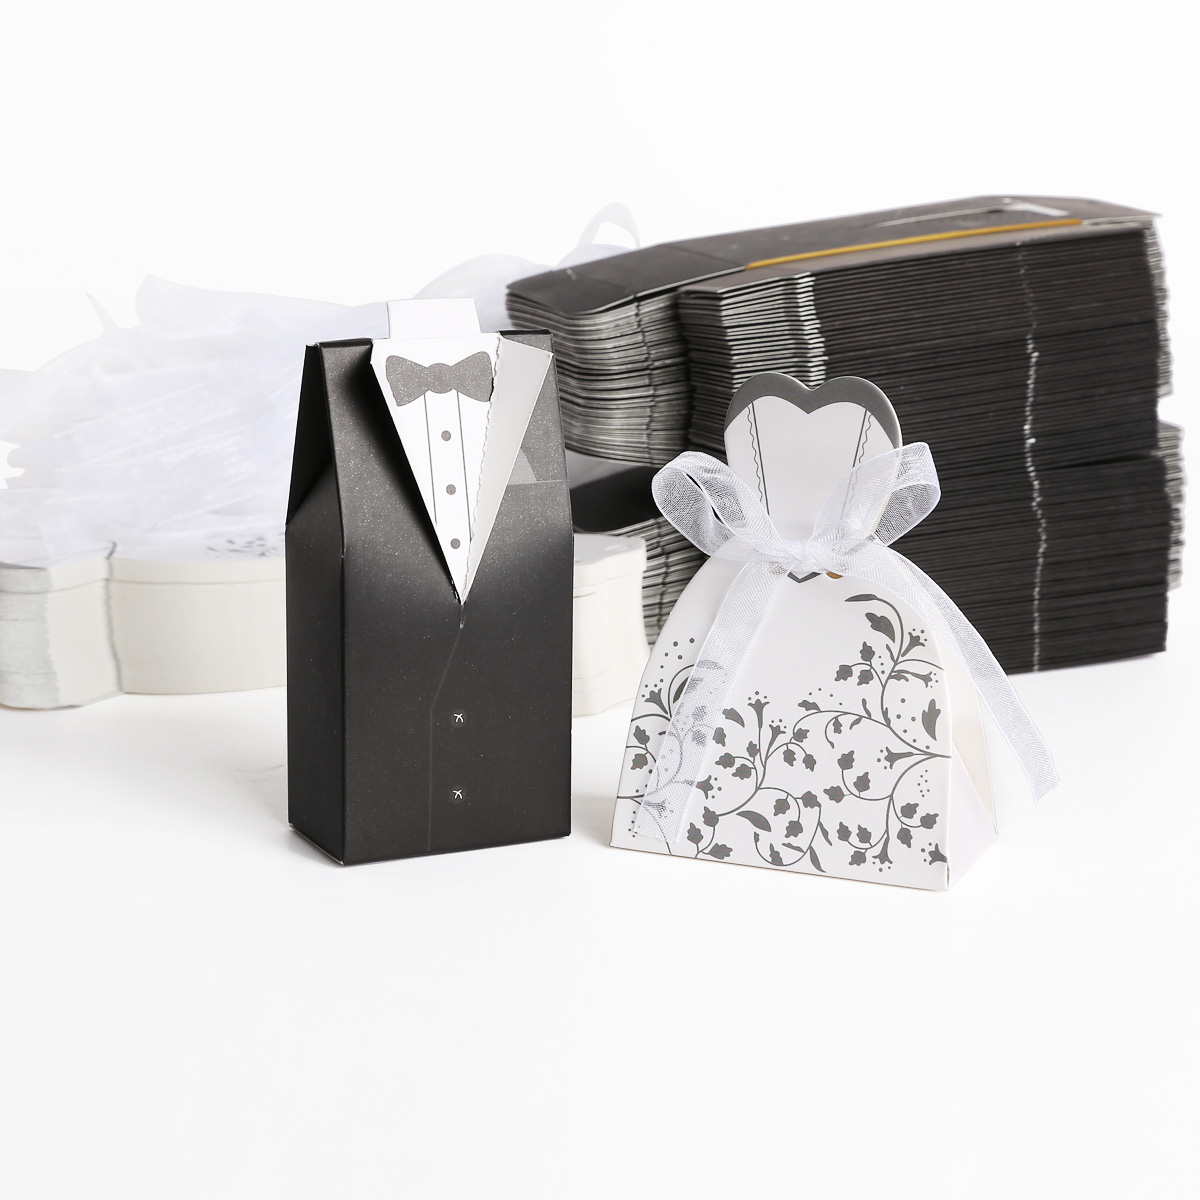 Wedding Gift Baskets For Bride And Groom Australia : Wedding Bomboniere Cake Candy Favour Boxes Dress & Tuxedo Bride Groom ...